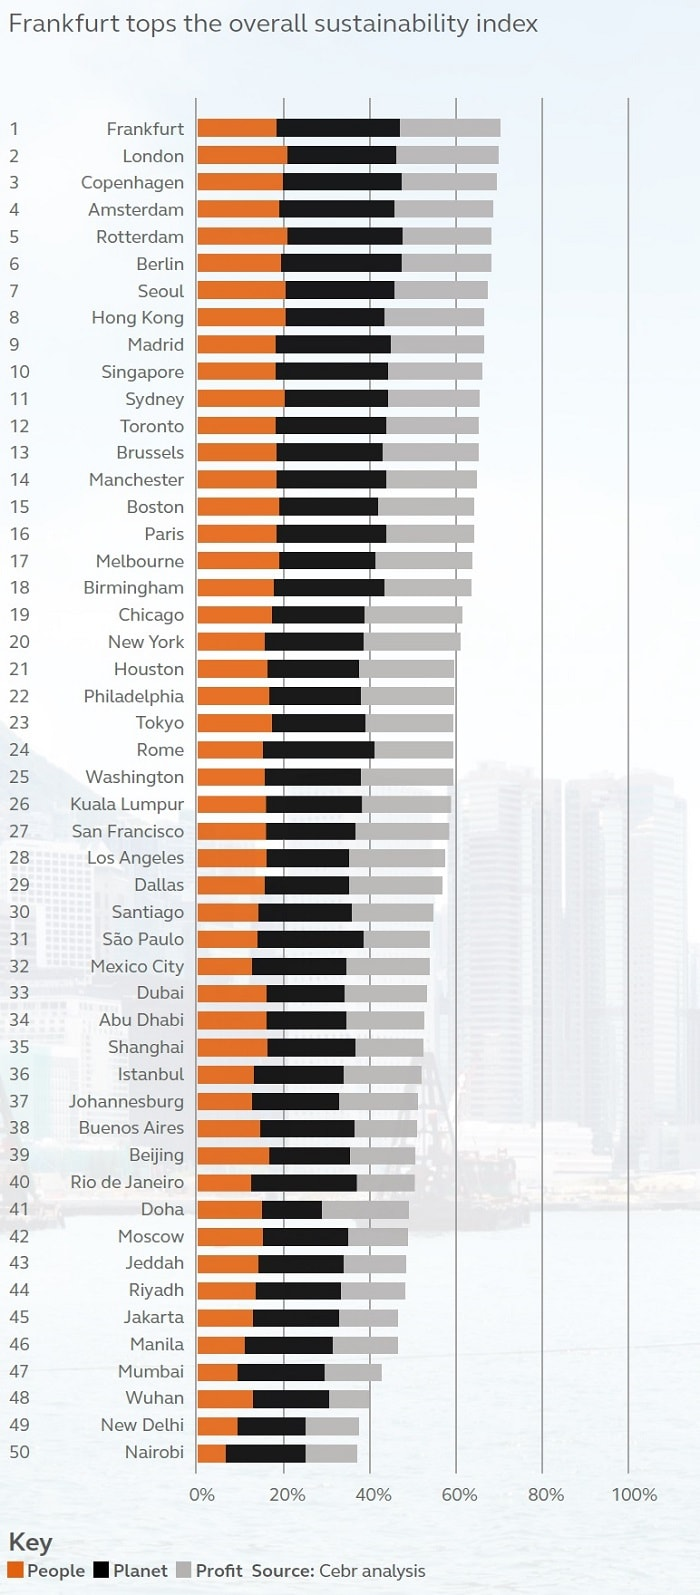 Top 50 Sustainable Cities Index 2015